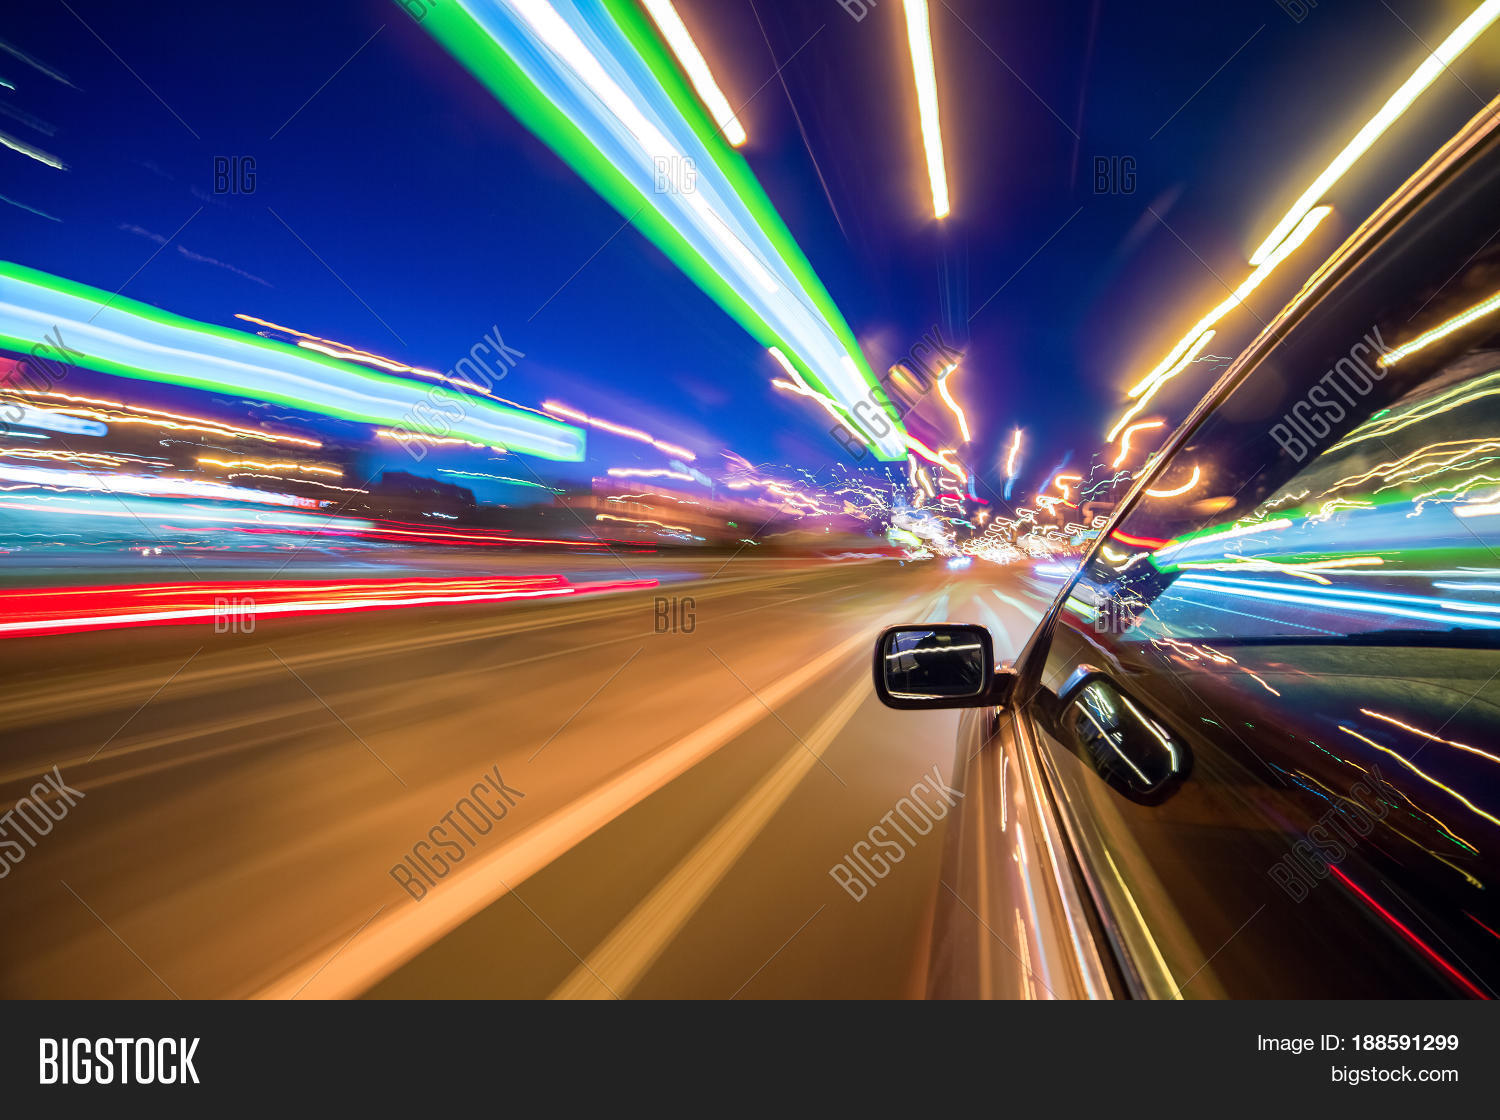 View Side Car Moving Image Photo Free Trial Bigstock